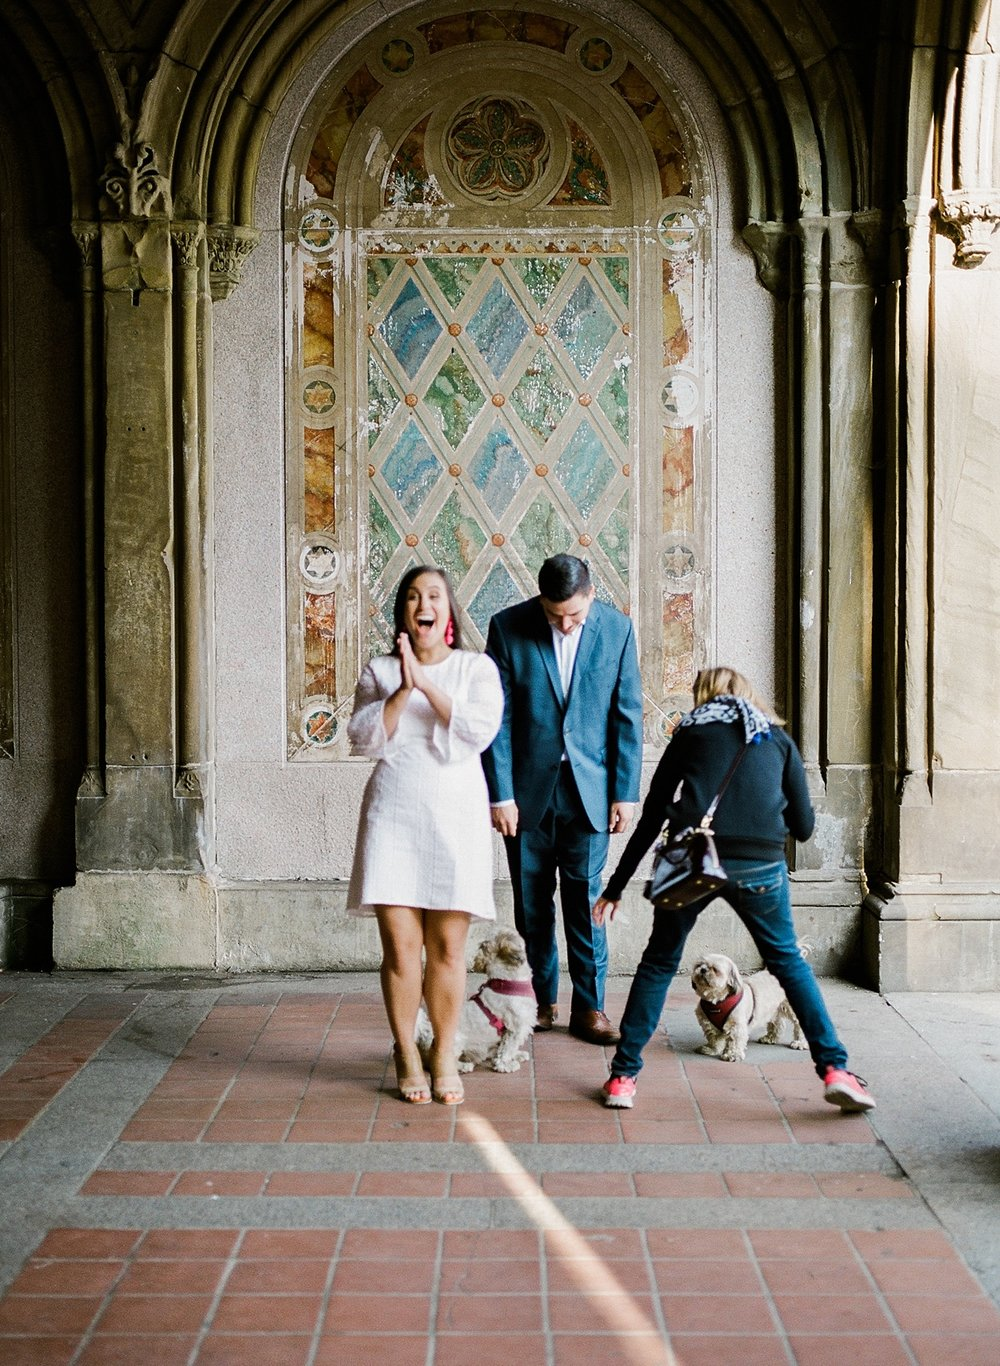 Kimberly Florence Photography_Loeb Boathouse_Central Park Engagement Session_New York City Wedding Photographer_NYC wedding_new york wedding_0061.jpg